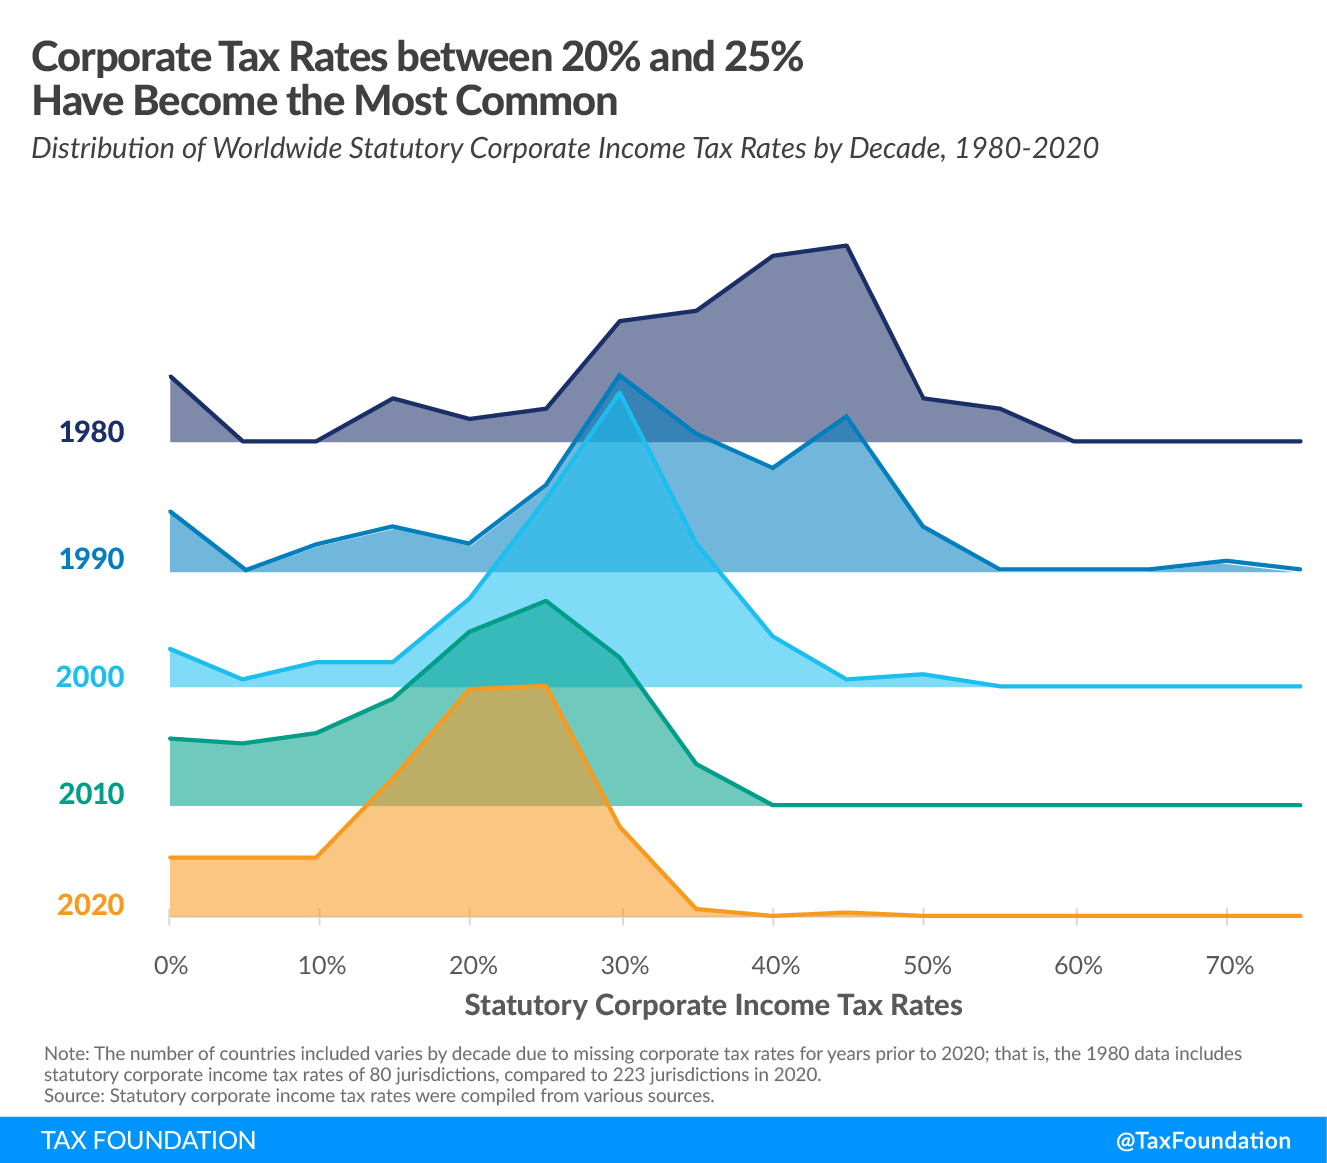 Corporate tax rates between 20 percent and 25 percent are most common. 2020 corporate tax rates around the world, 2020 corporate tax trends